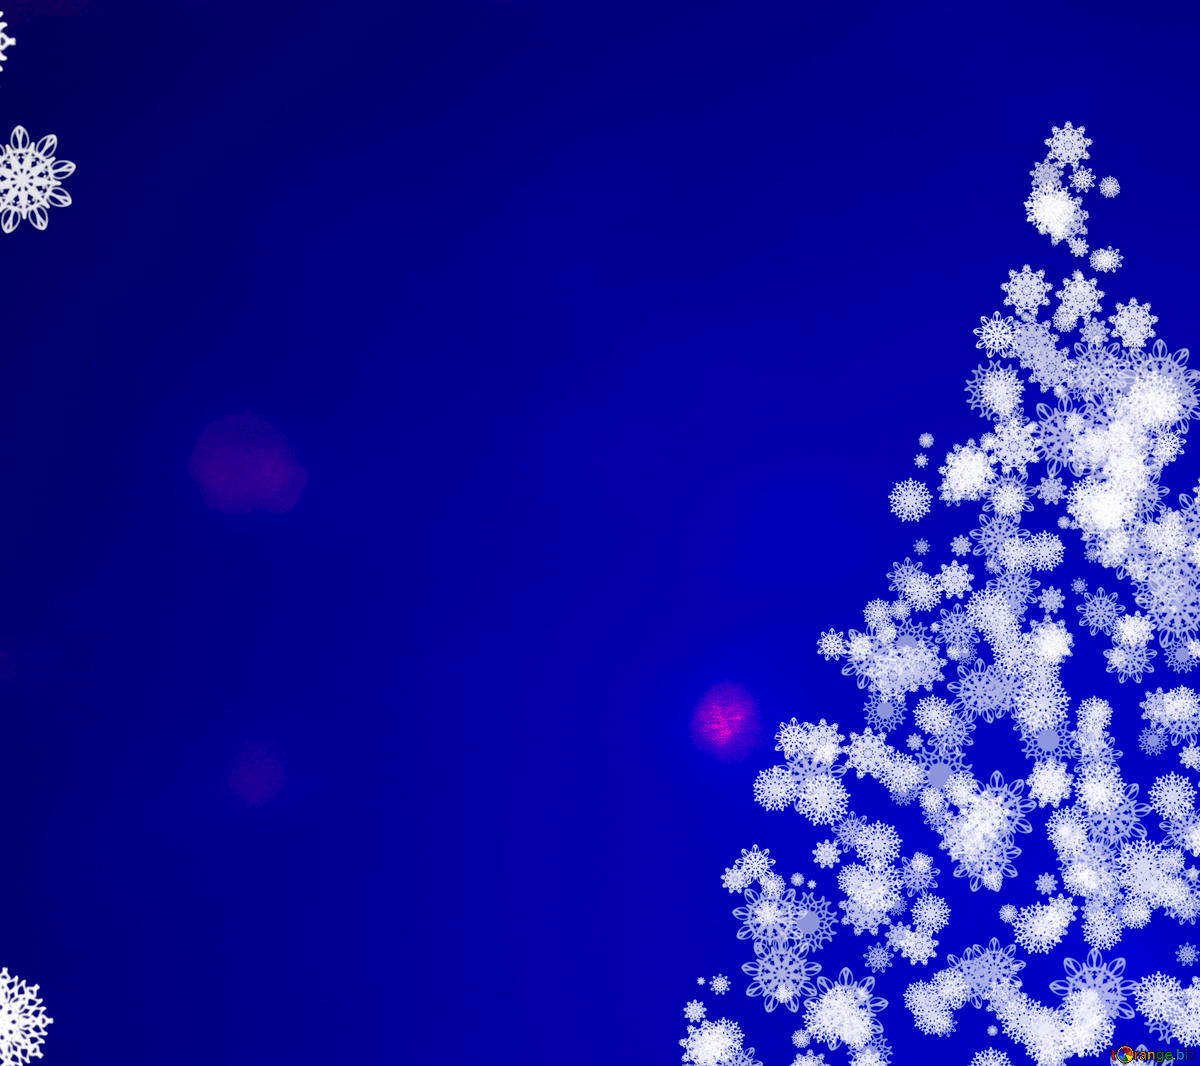 Download free picture Background clipart Christmas tree with.